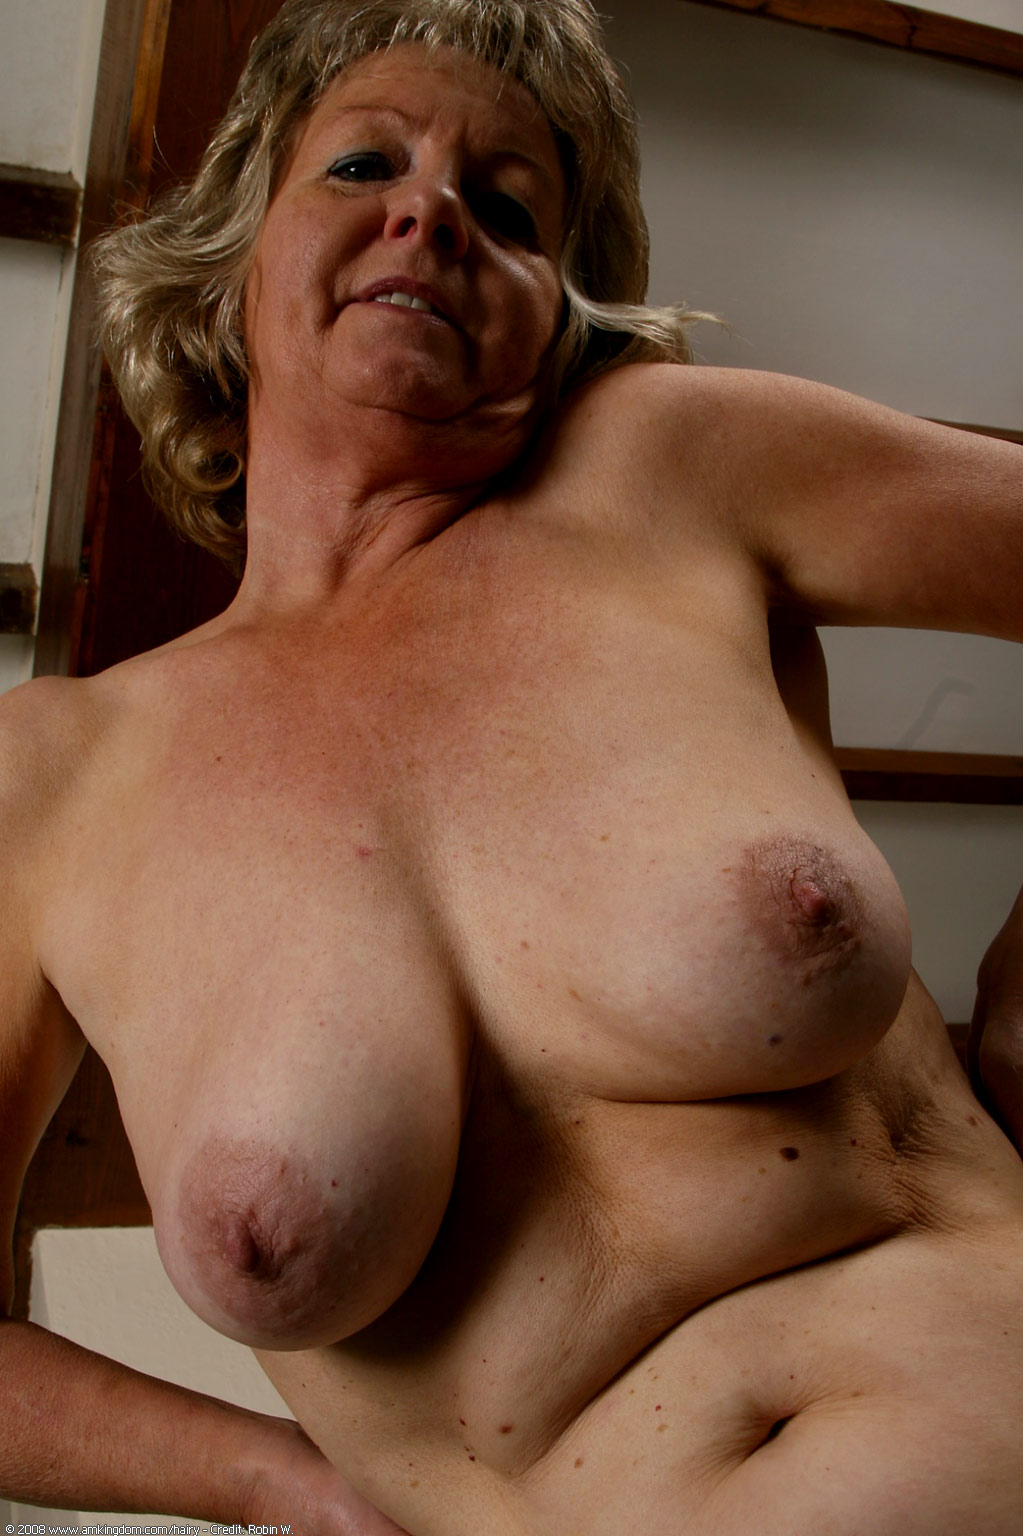 Colleen mature nude self shots